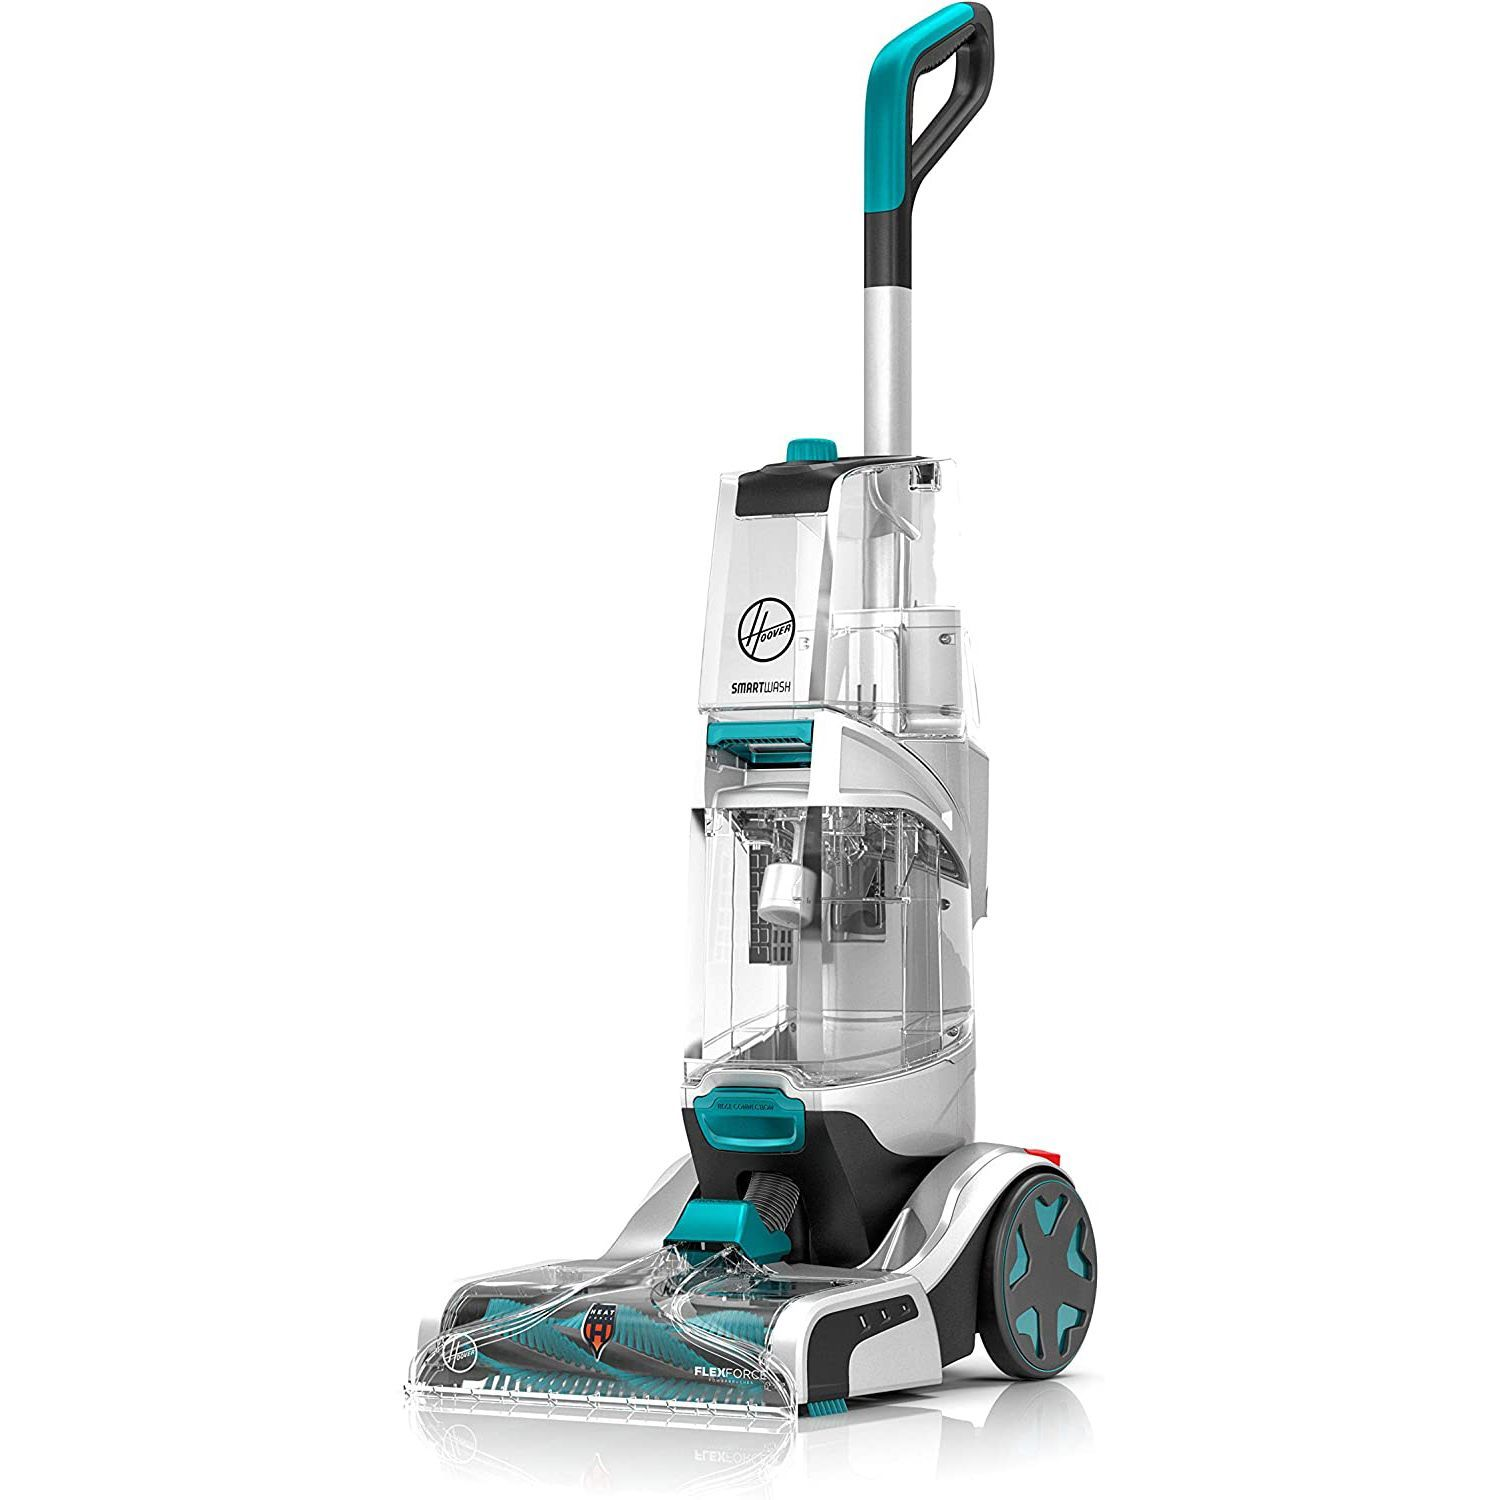 5 Best Carpet Cleaners To Buy 2021 Top Carpet Cleaning Machine Reviews